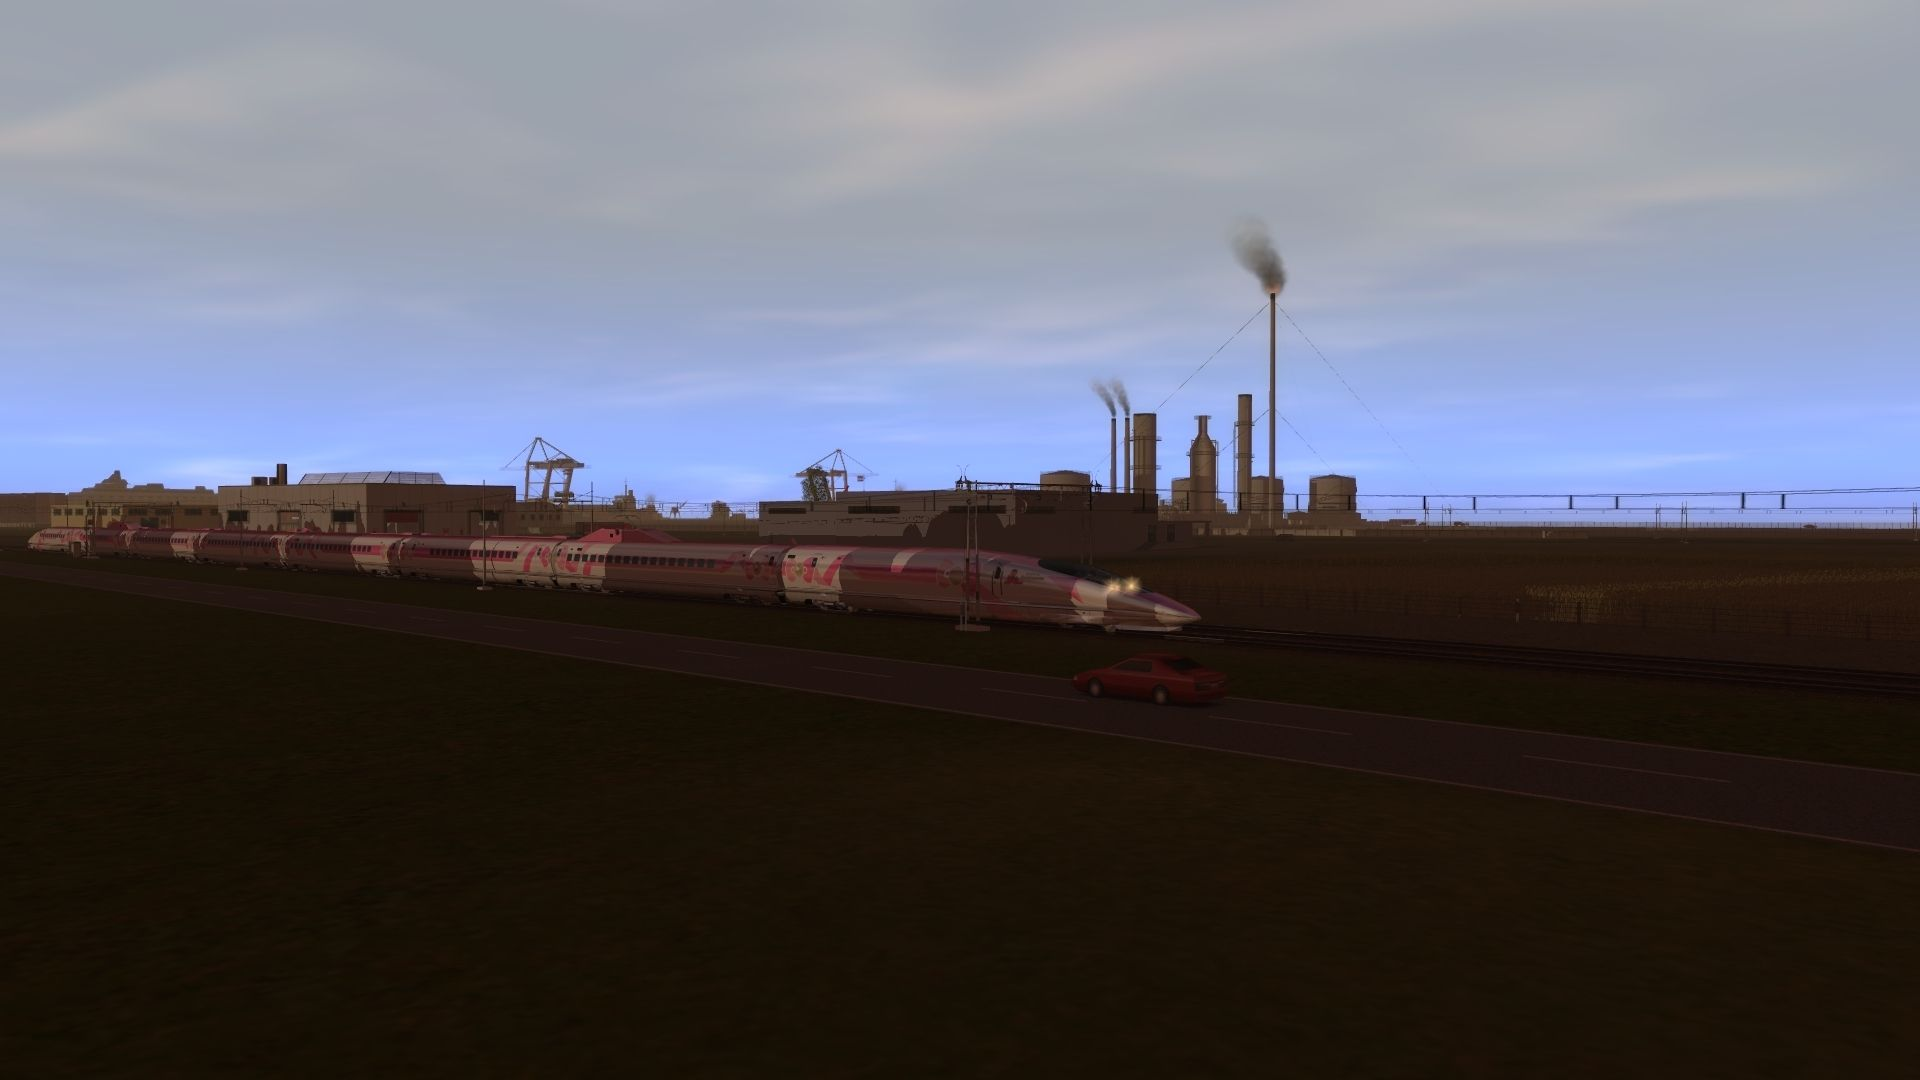 My-Trainz-Screenshot-Image.jpg